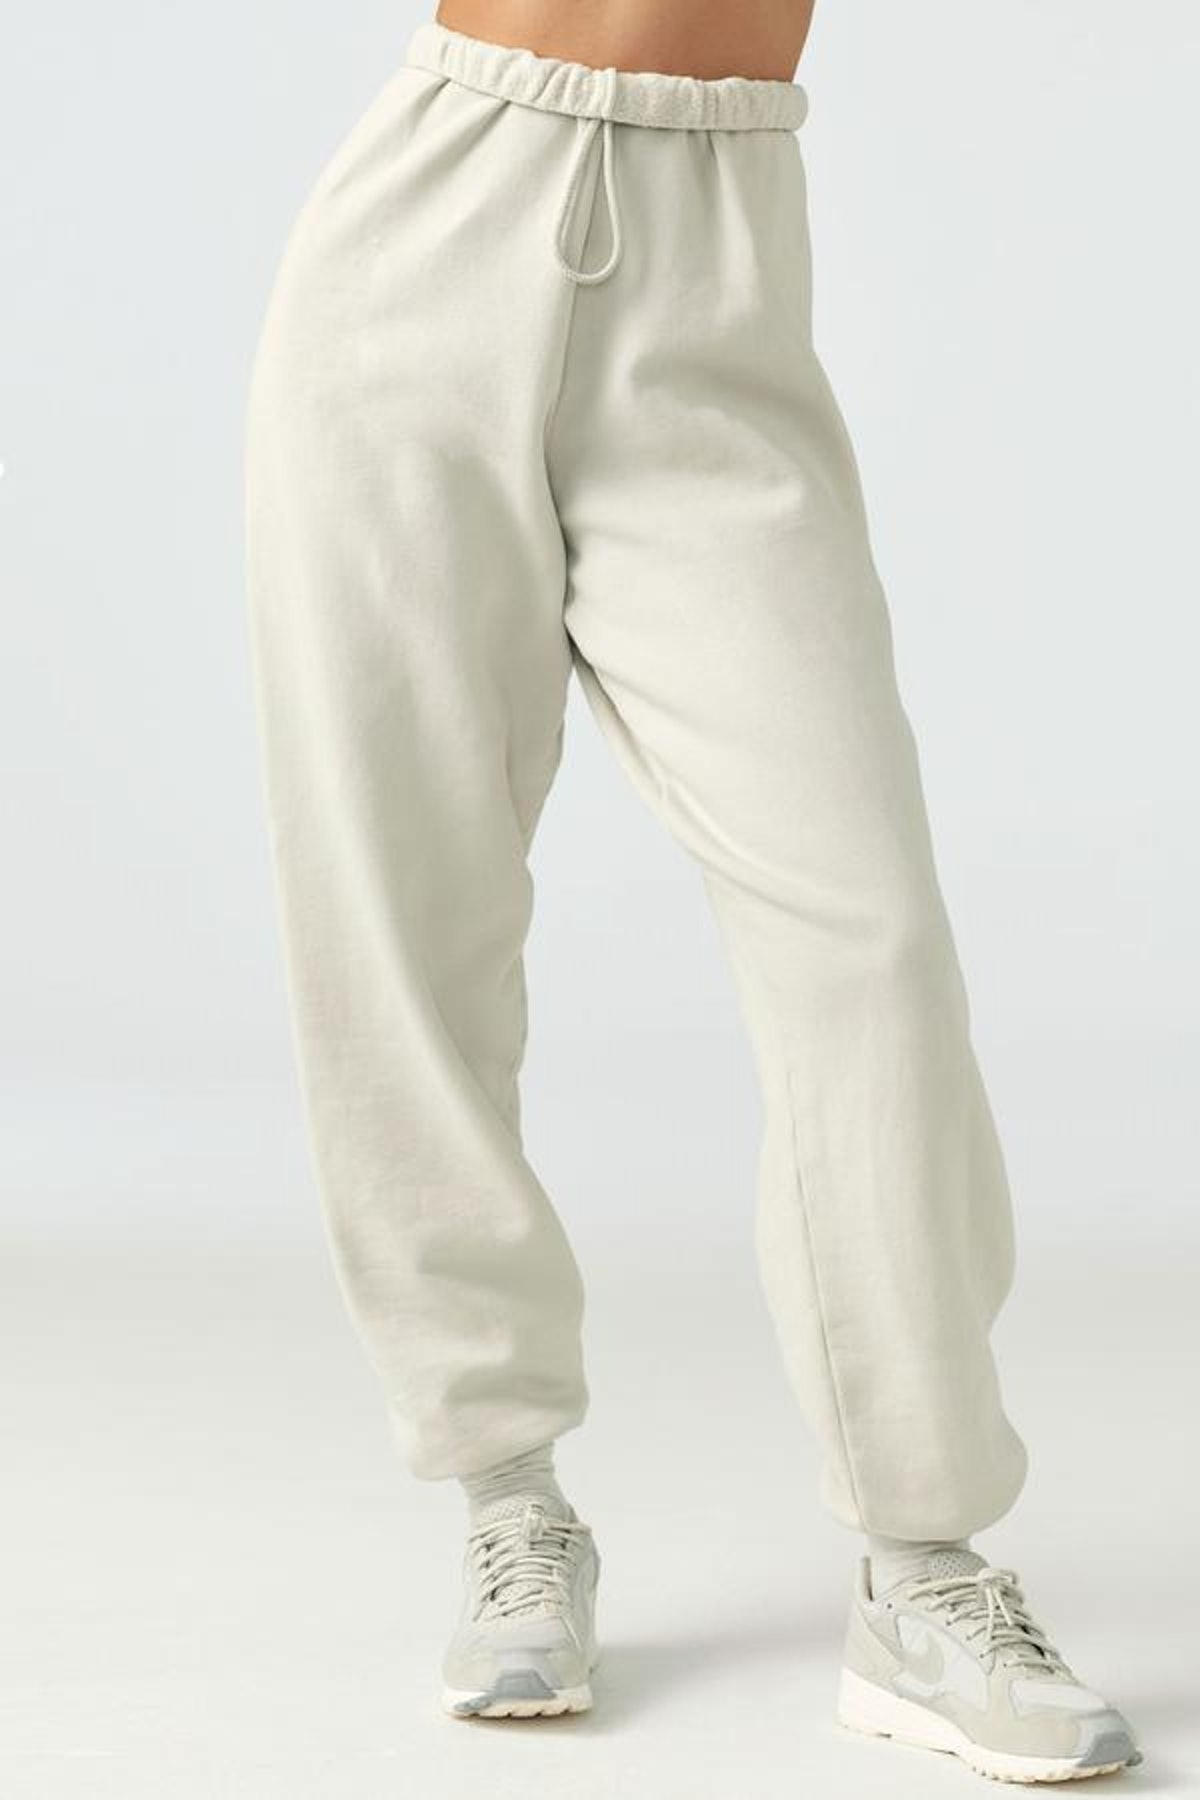 Oversized Jogger in Sahara French Terry from Joah Brown.